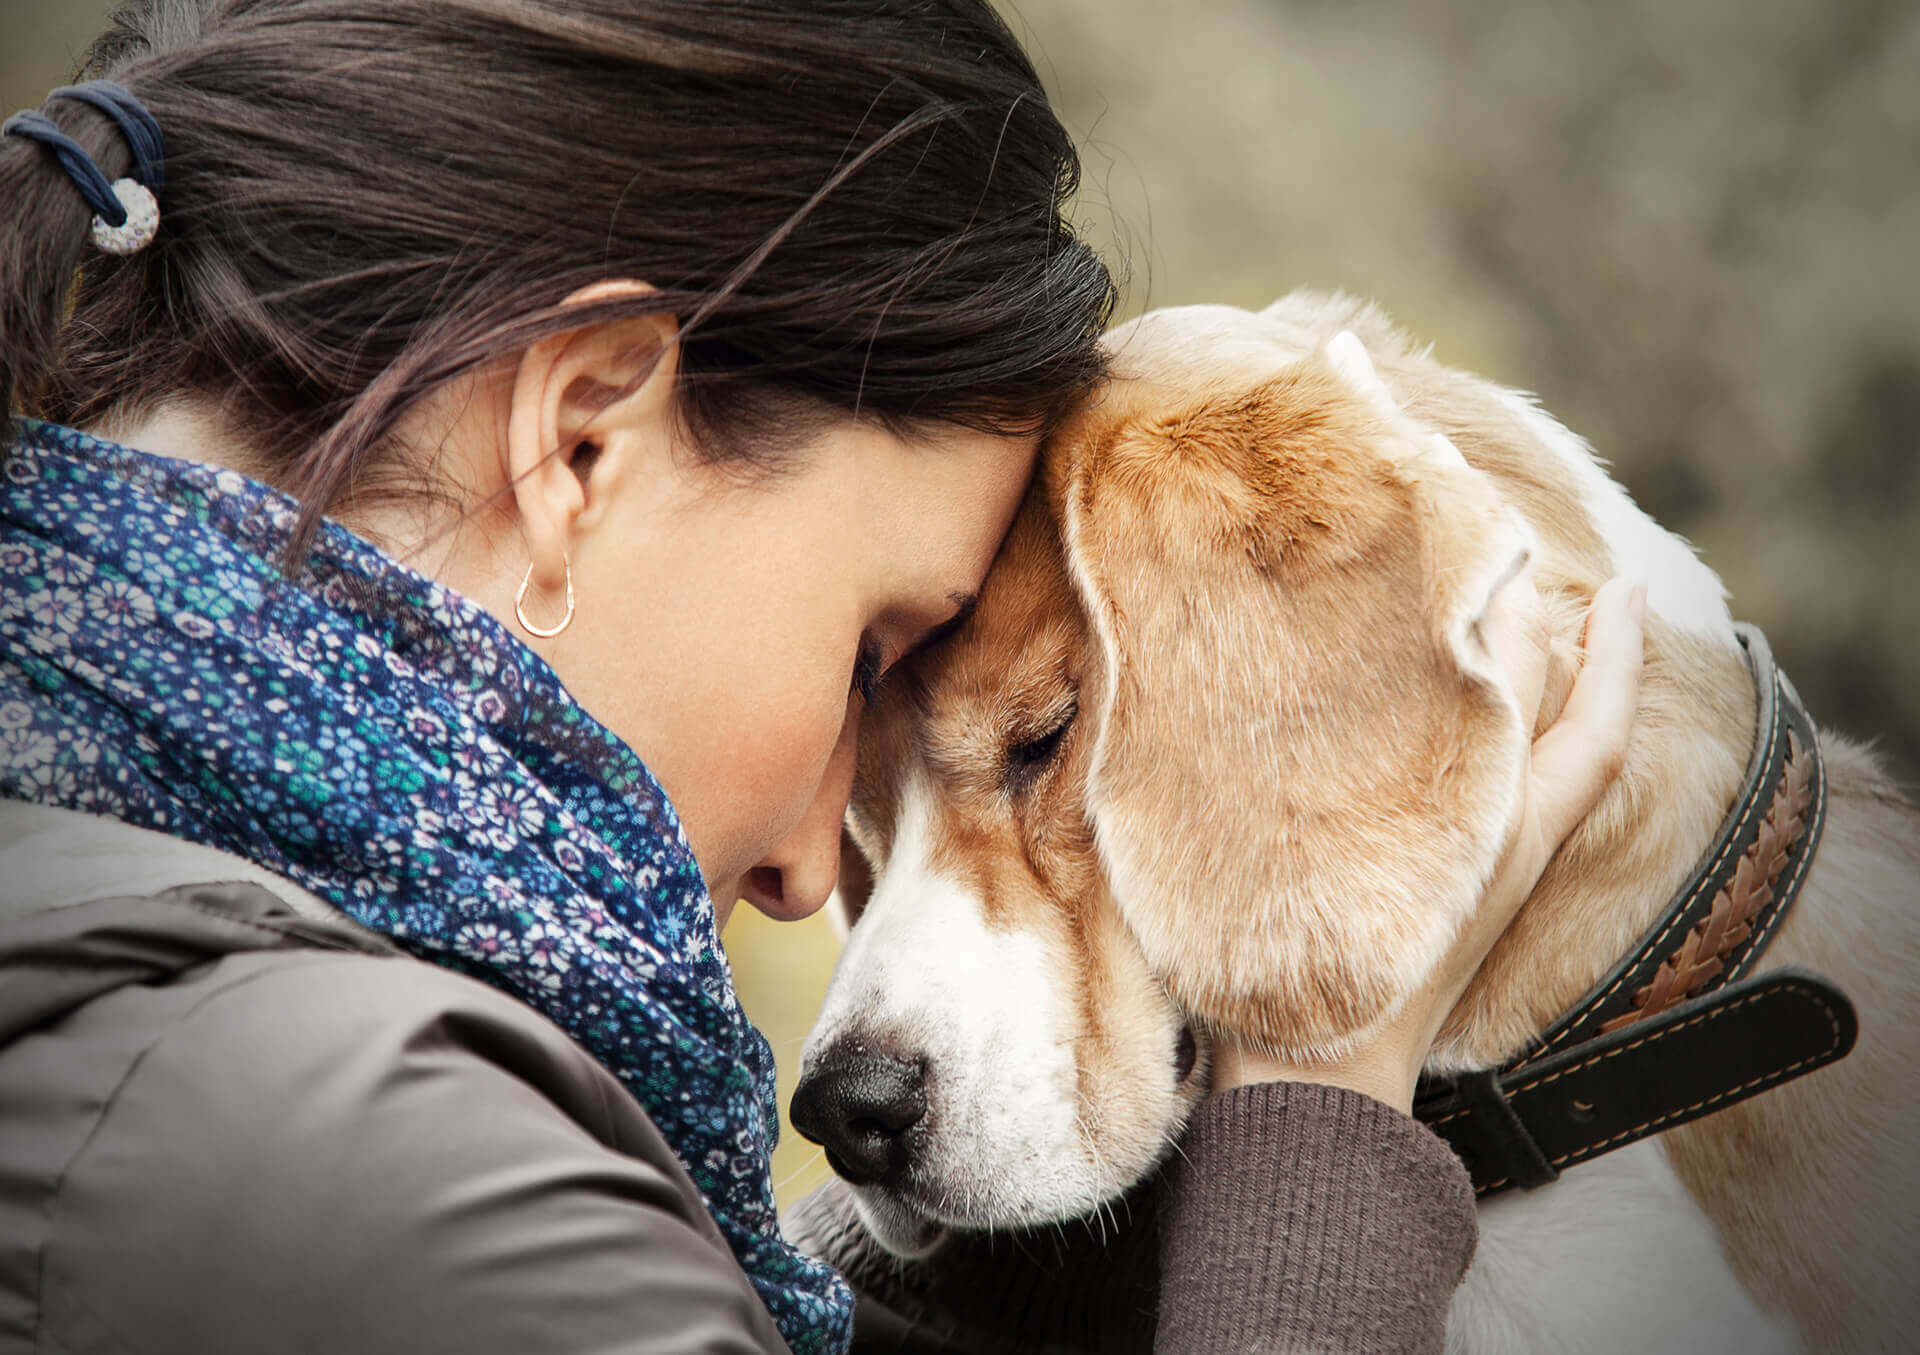 Dog owner and her sick dog, they are touching heads in sadness.